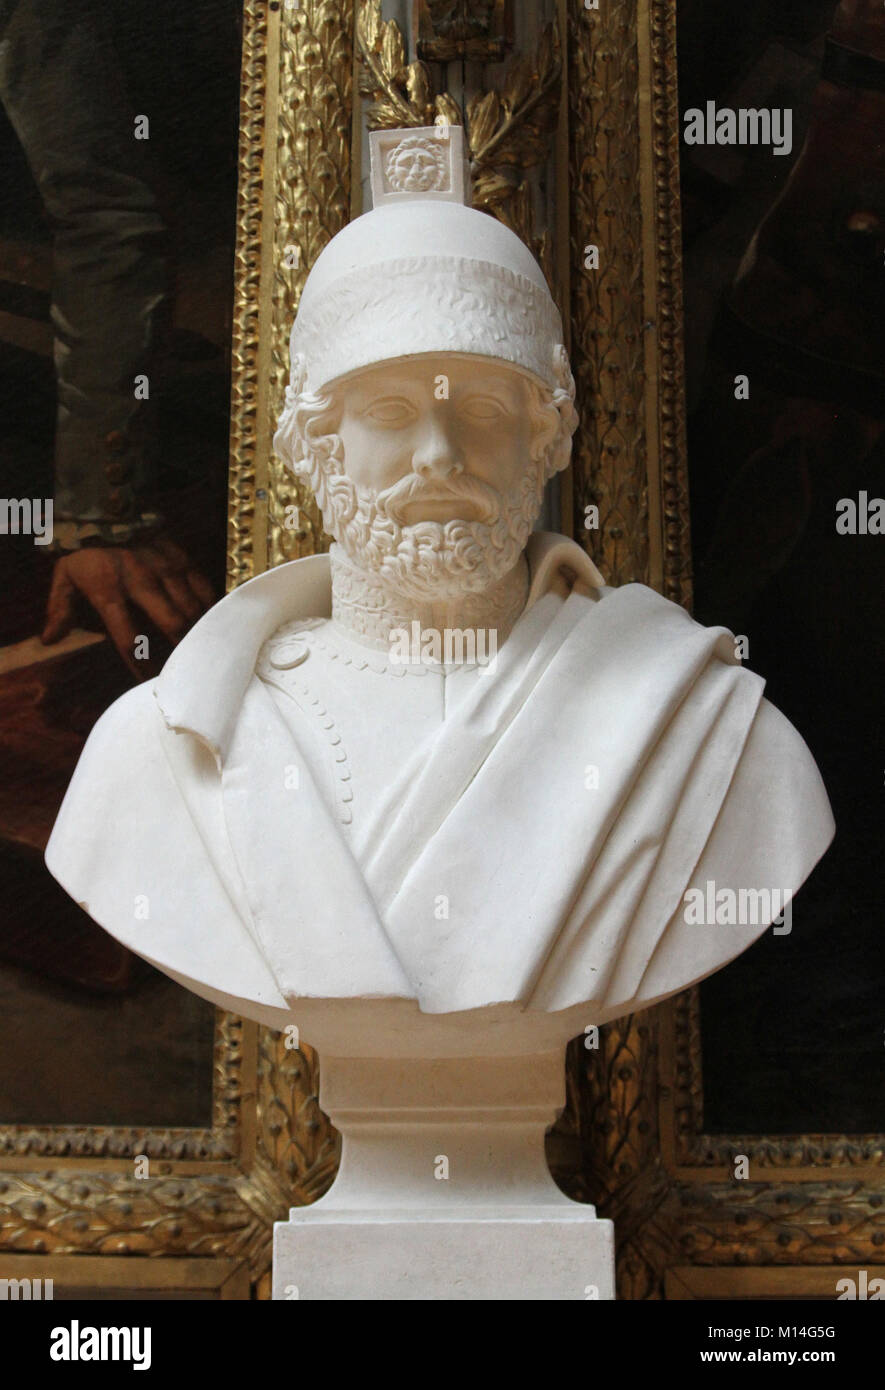 Marble bust of Jacques Christophe Coquille Dugommier Commander in Chief by Antoine-Denis Chaudet in the Gallery - Stock Image